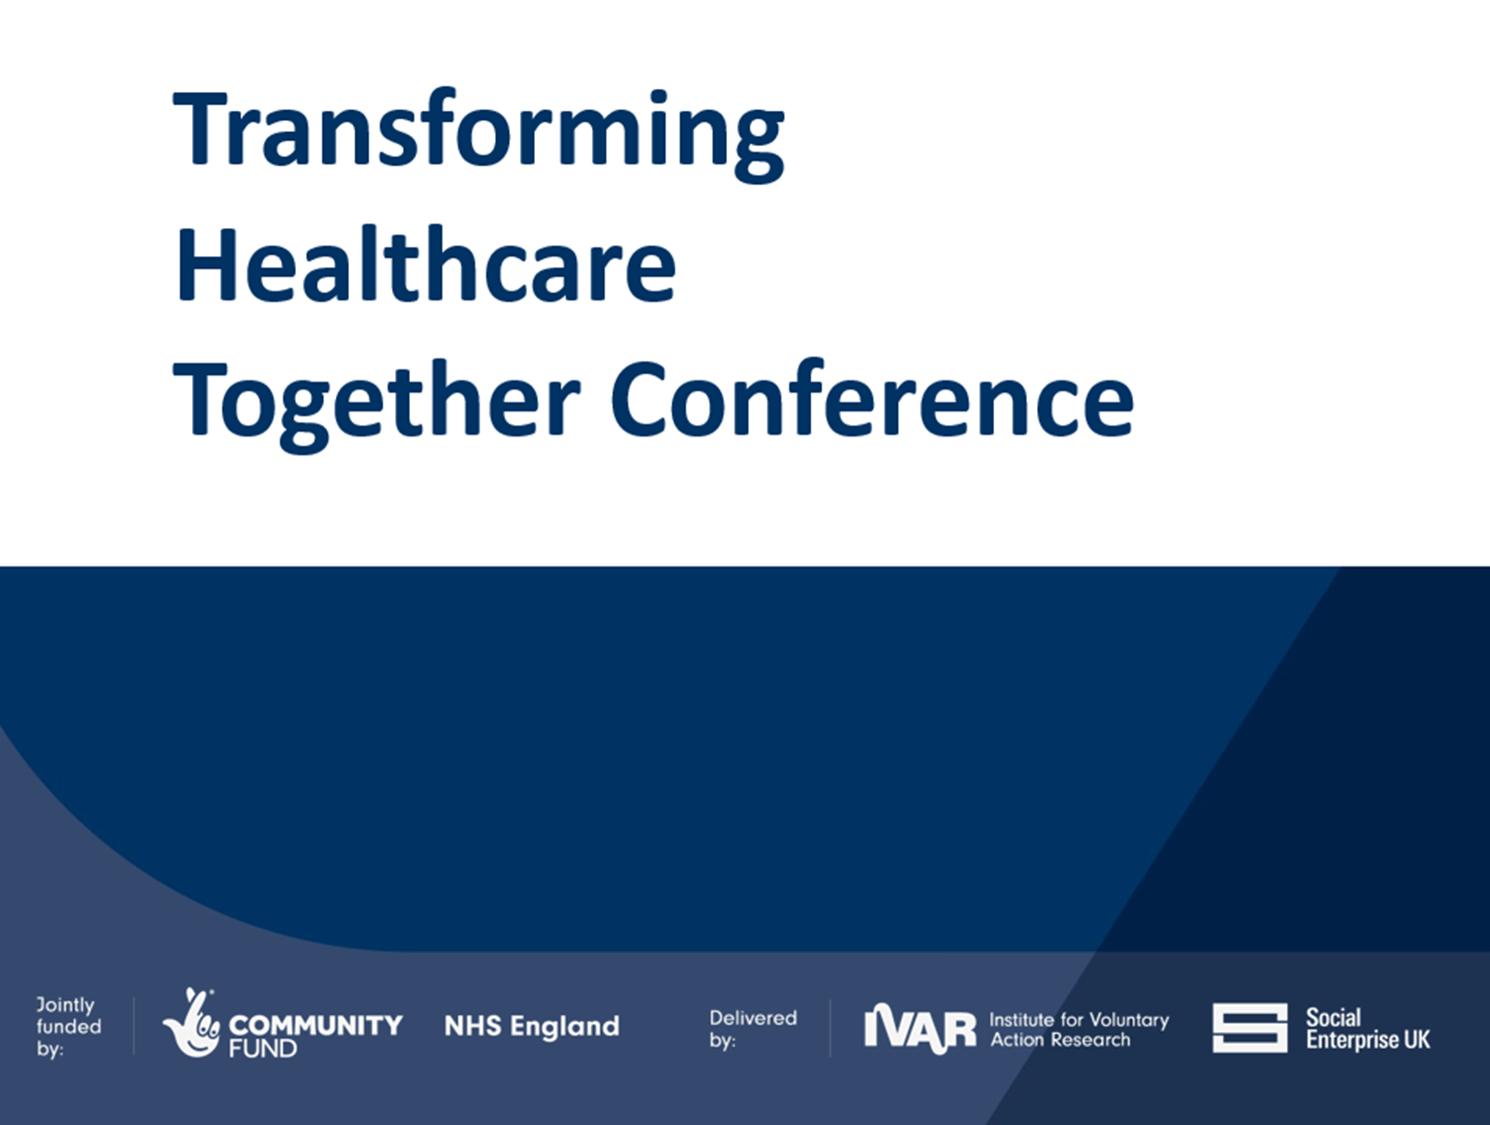 Slides from the Transforming Healthcare Together Conference 2019